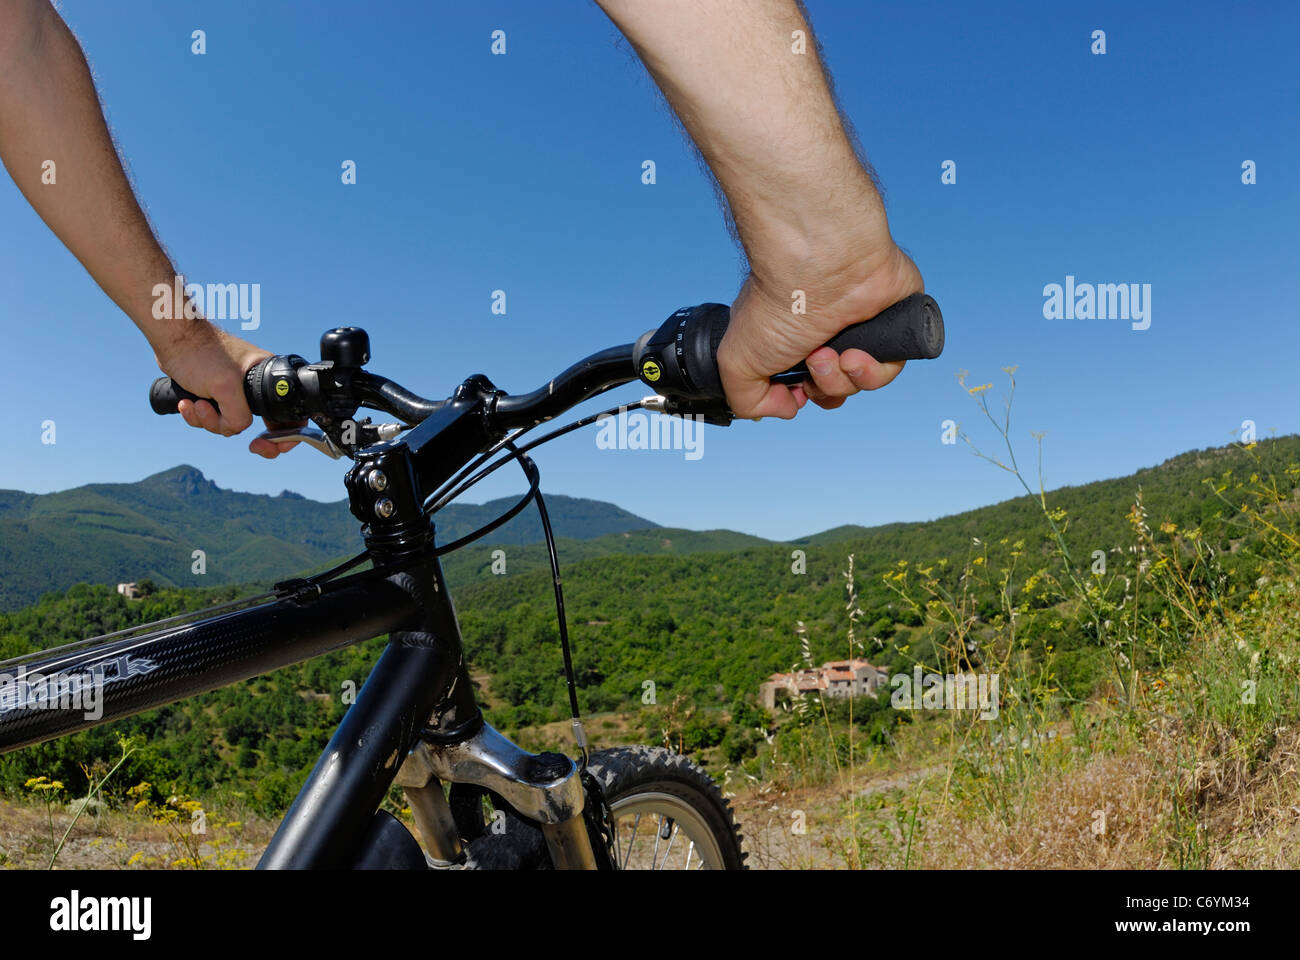 Cyclist cycling and mountain biking in the hills on a mountain bike, Cevennes, France - point of view - Stock Image